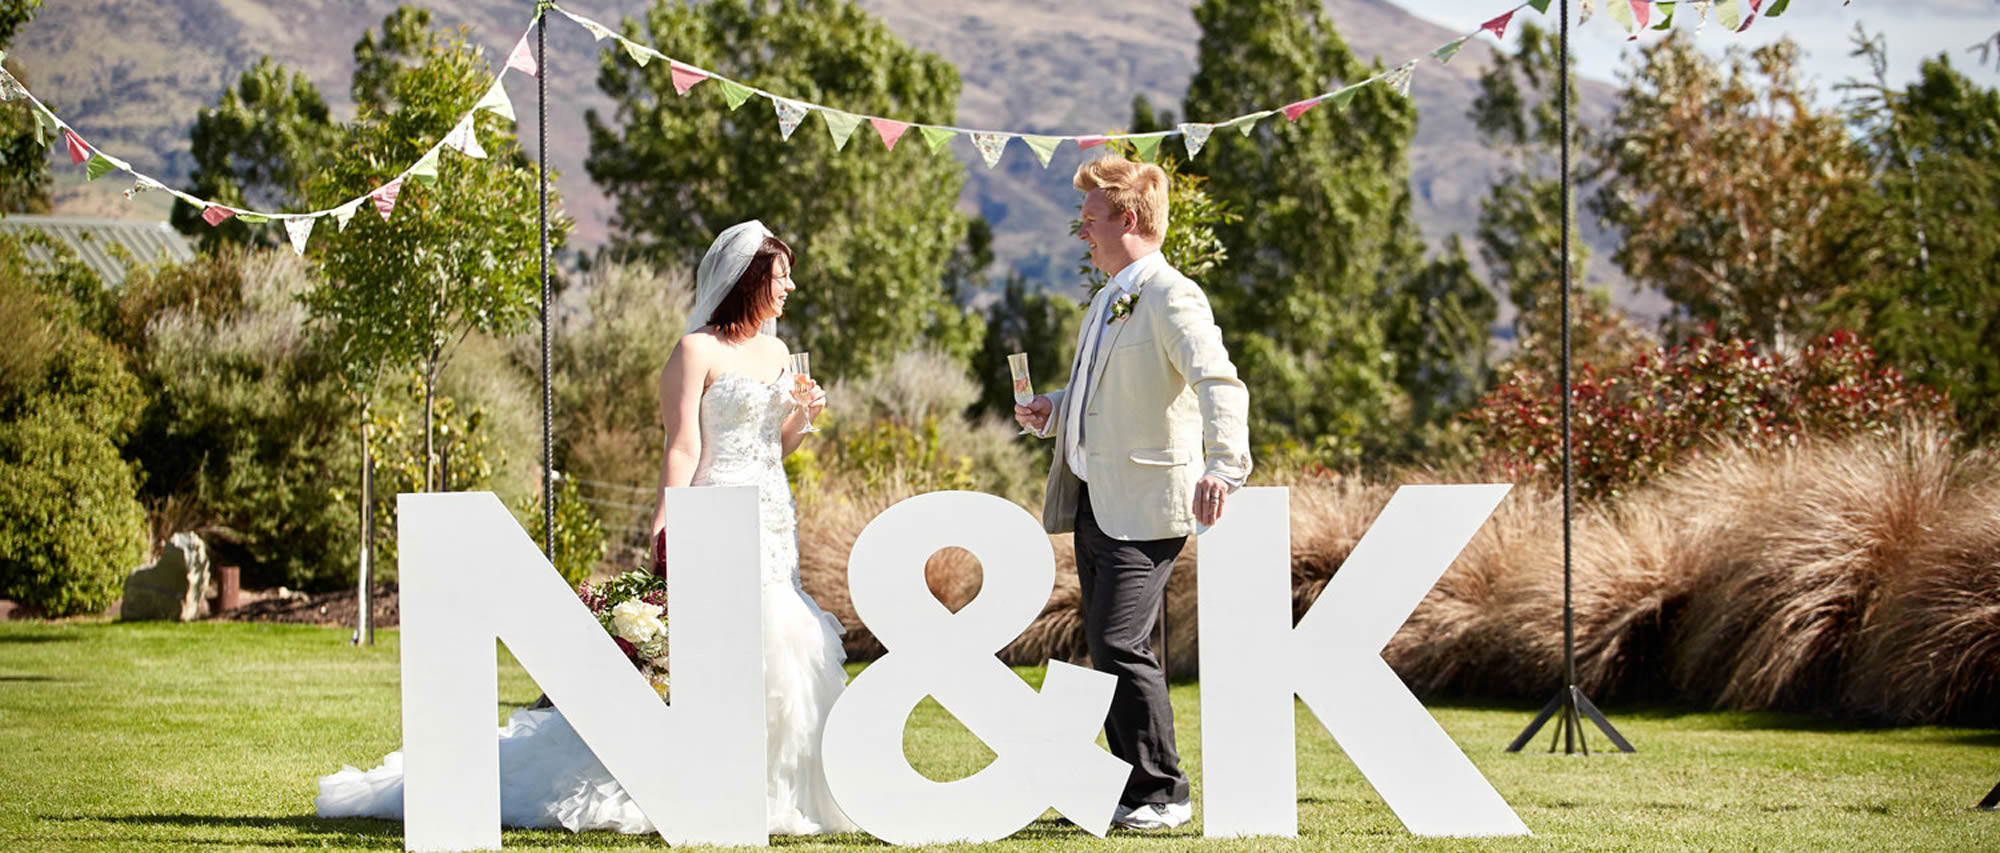 Wanaka Wedding Hire - Giant Letters